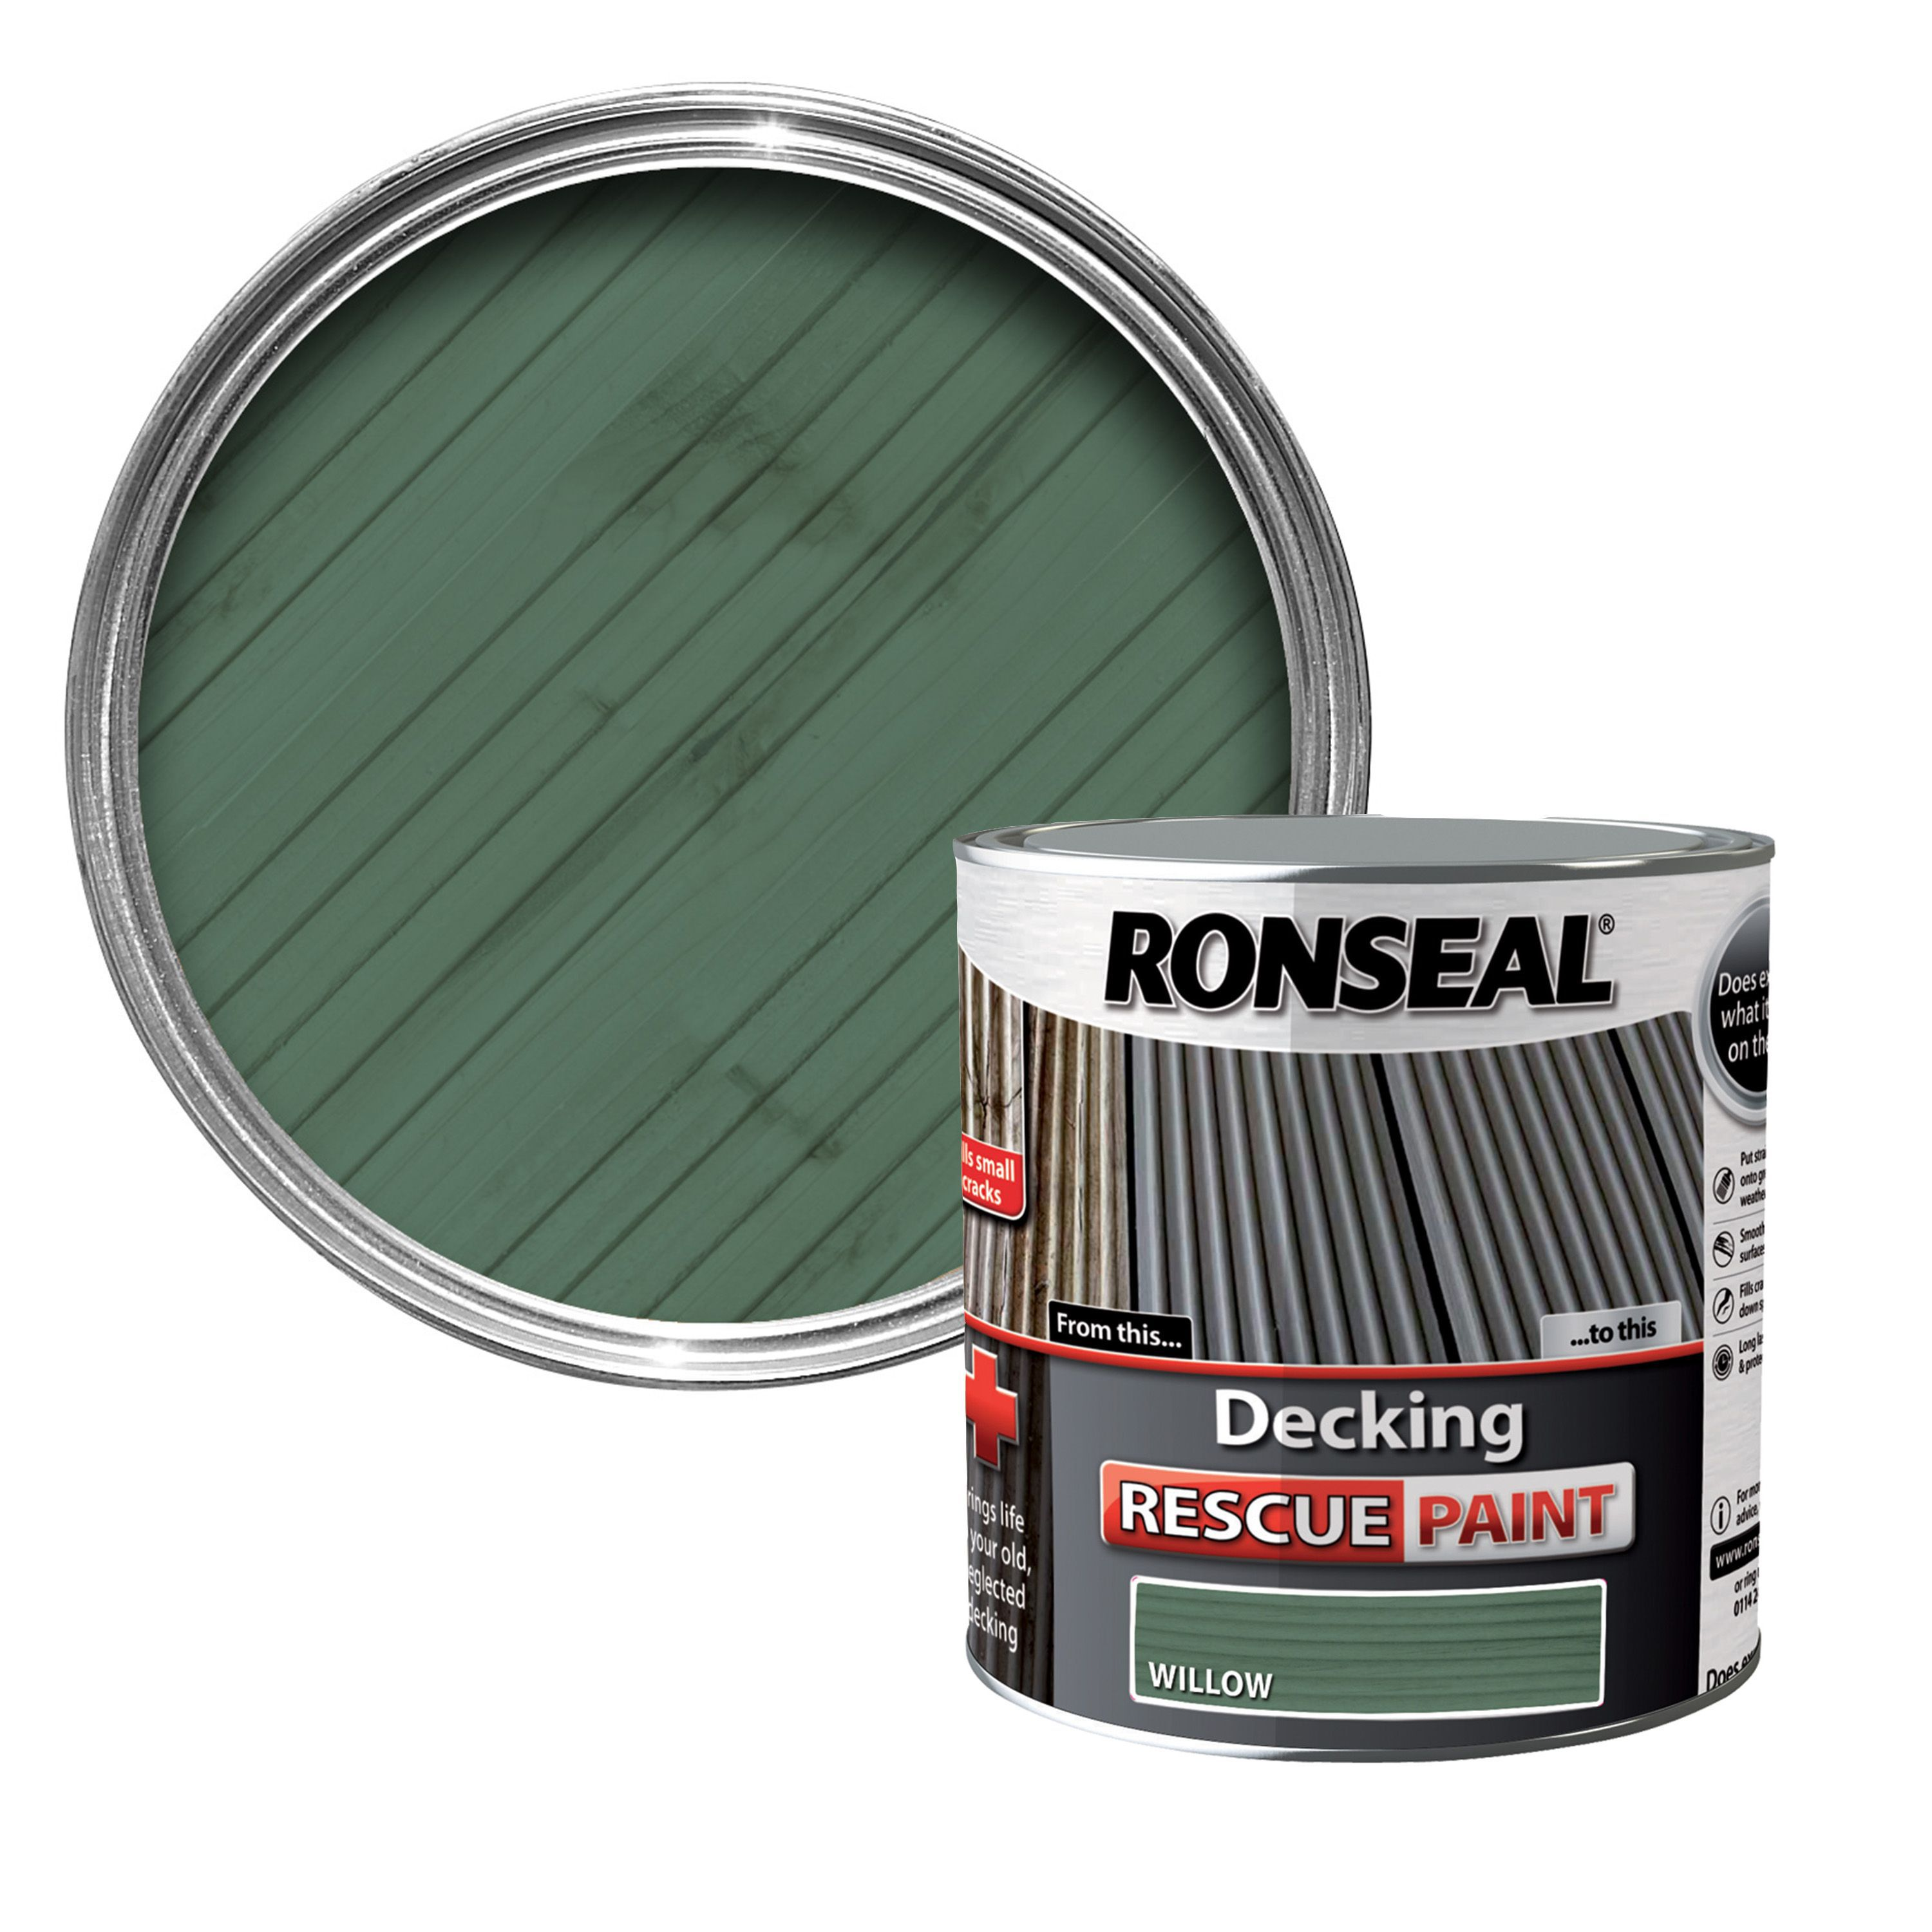 ronseal exterior smooth paint diy. Black Bedroom Furniture Sets. Home Design Ideas